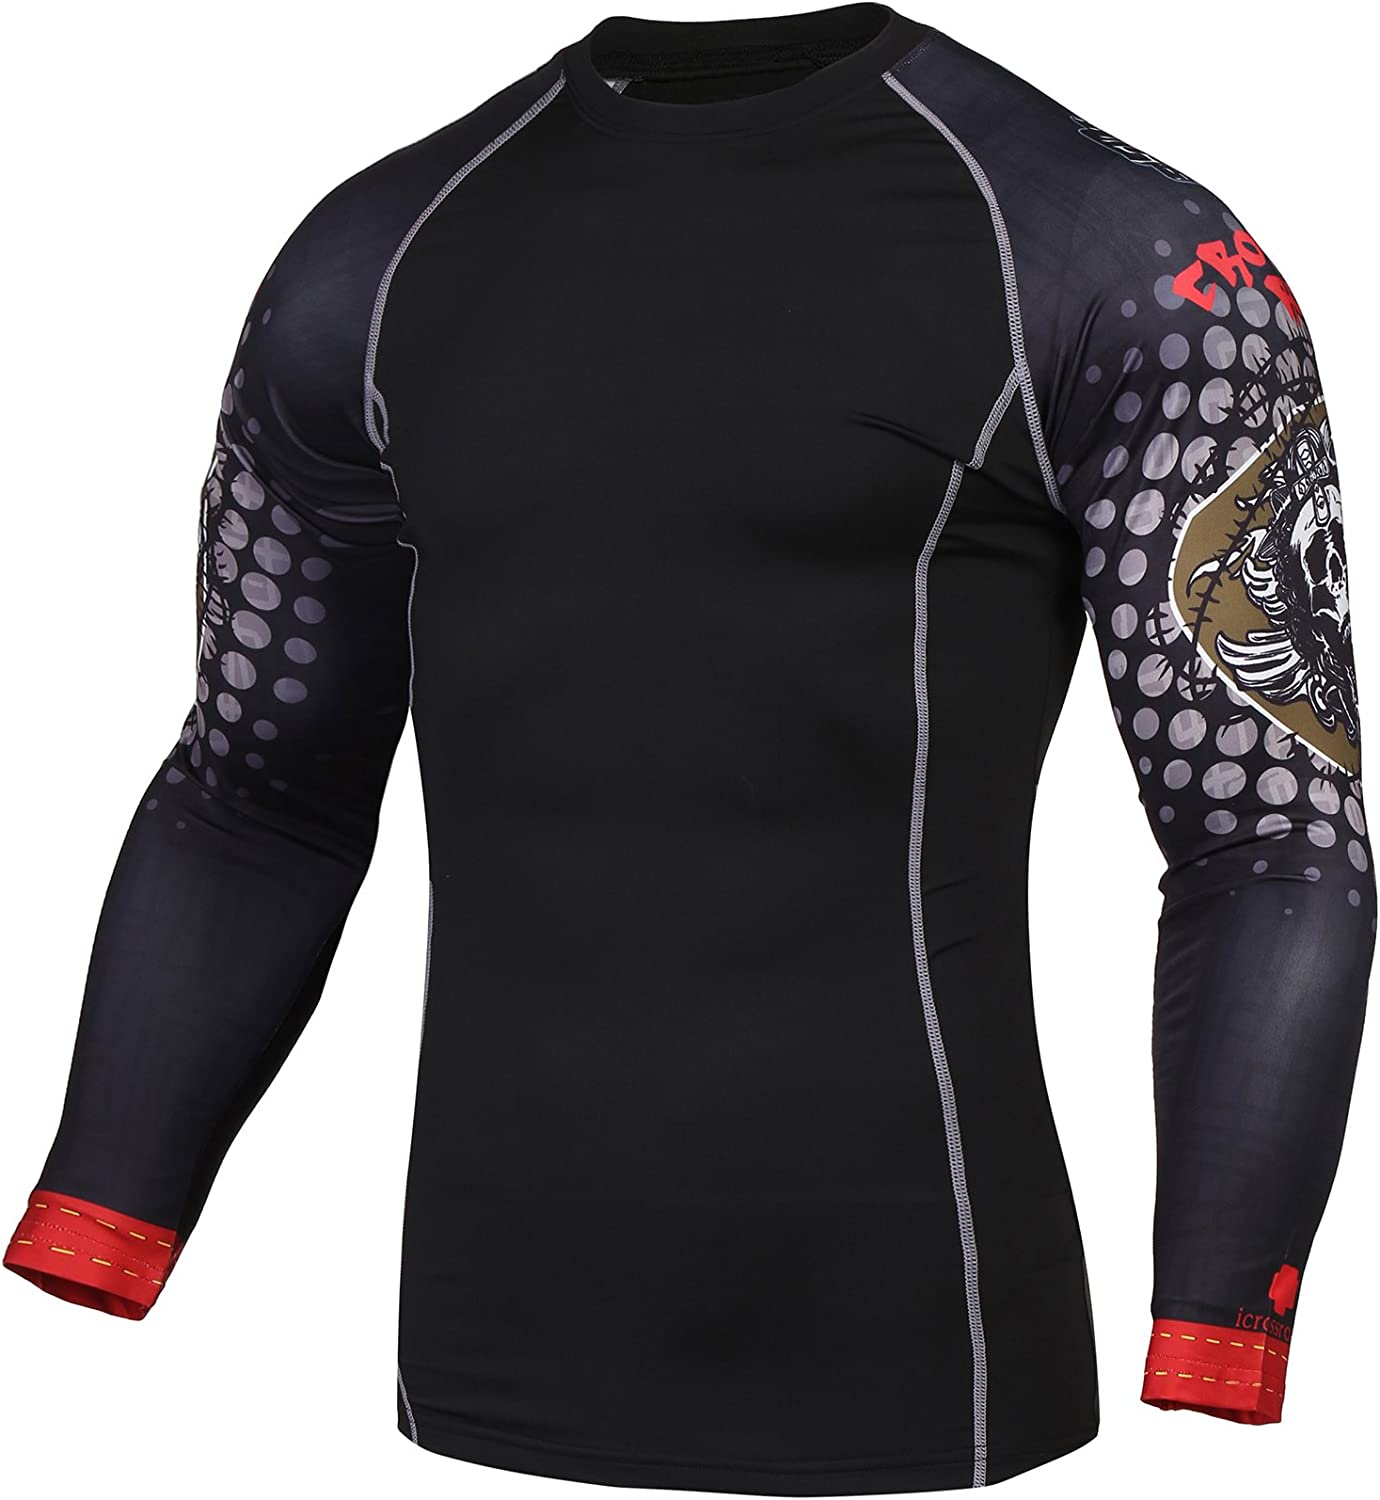 Men/'s Compression Base layer Athletic Tights Workout Gym Training Shirts Dri-fit